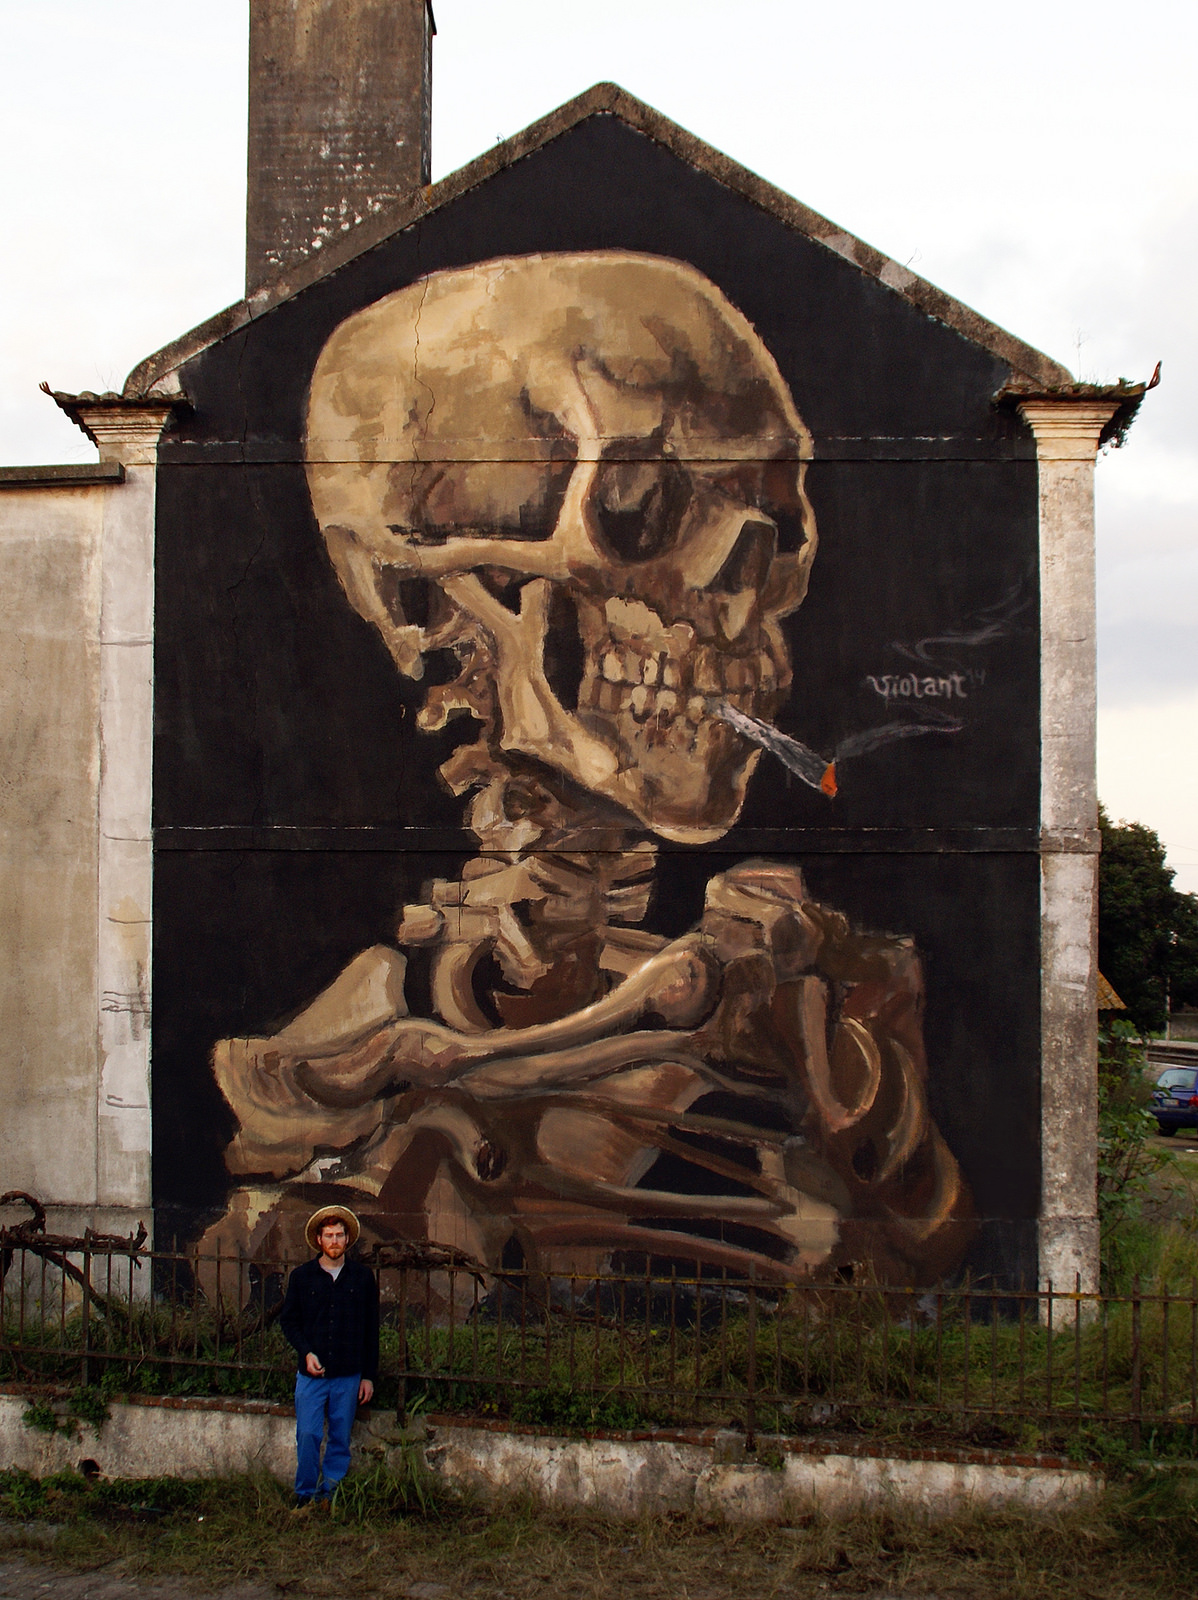 violant-skull-with-a-burning-joint-new-mural-02